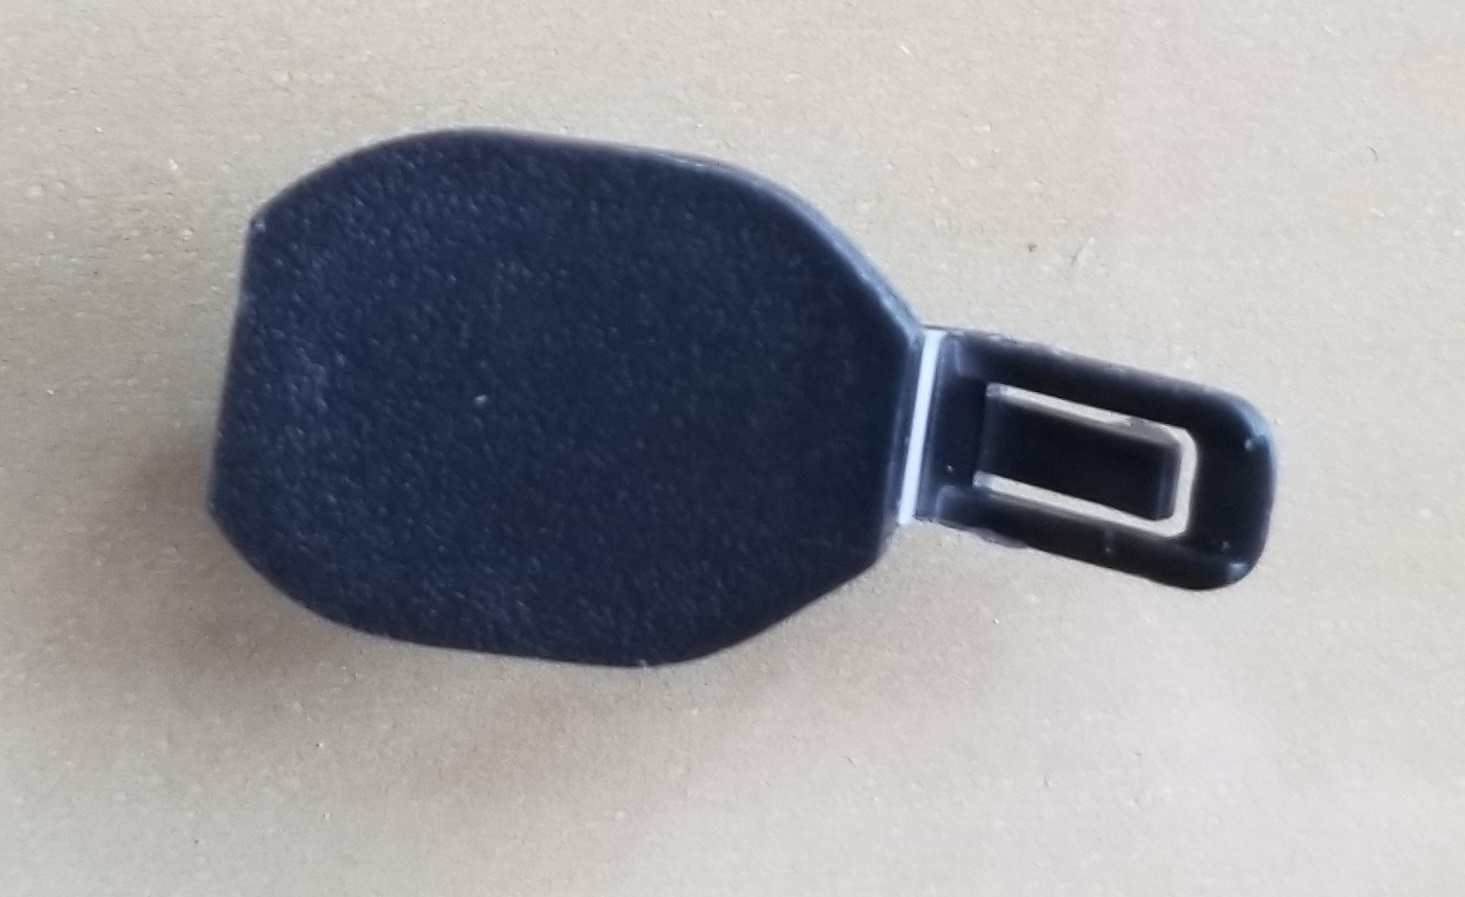 Plastic clip? found behind driver seat on floor .. what is this?-20190416_144449-jpg